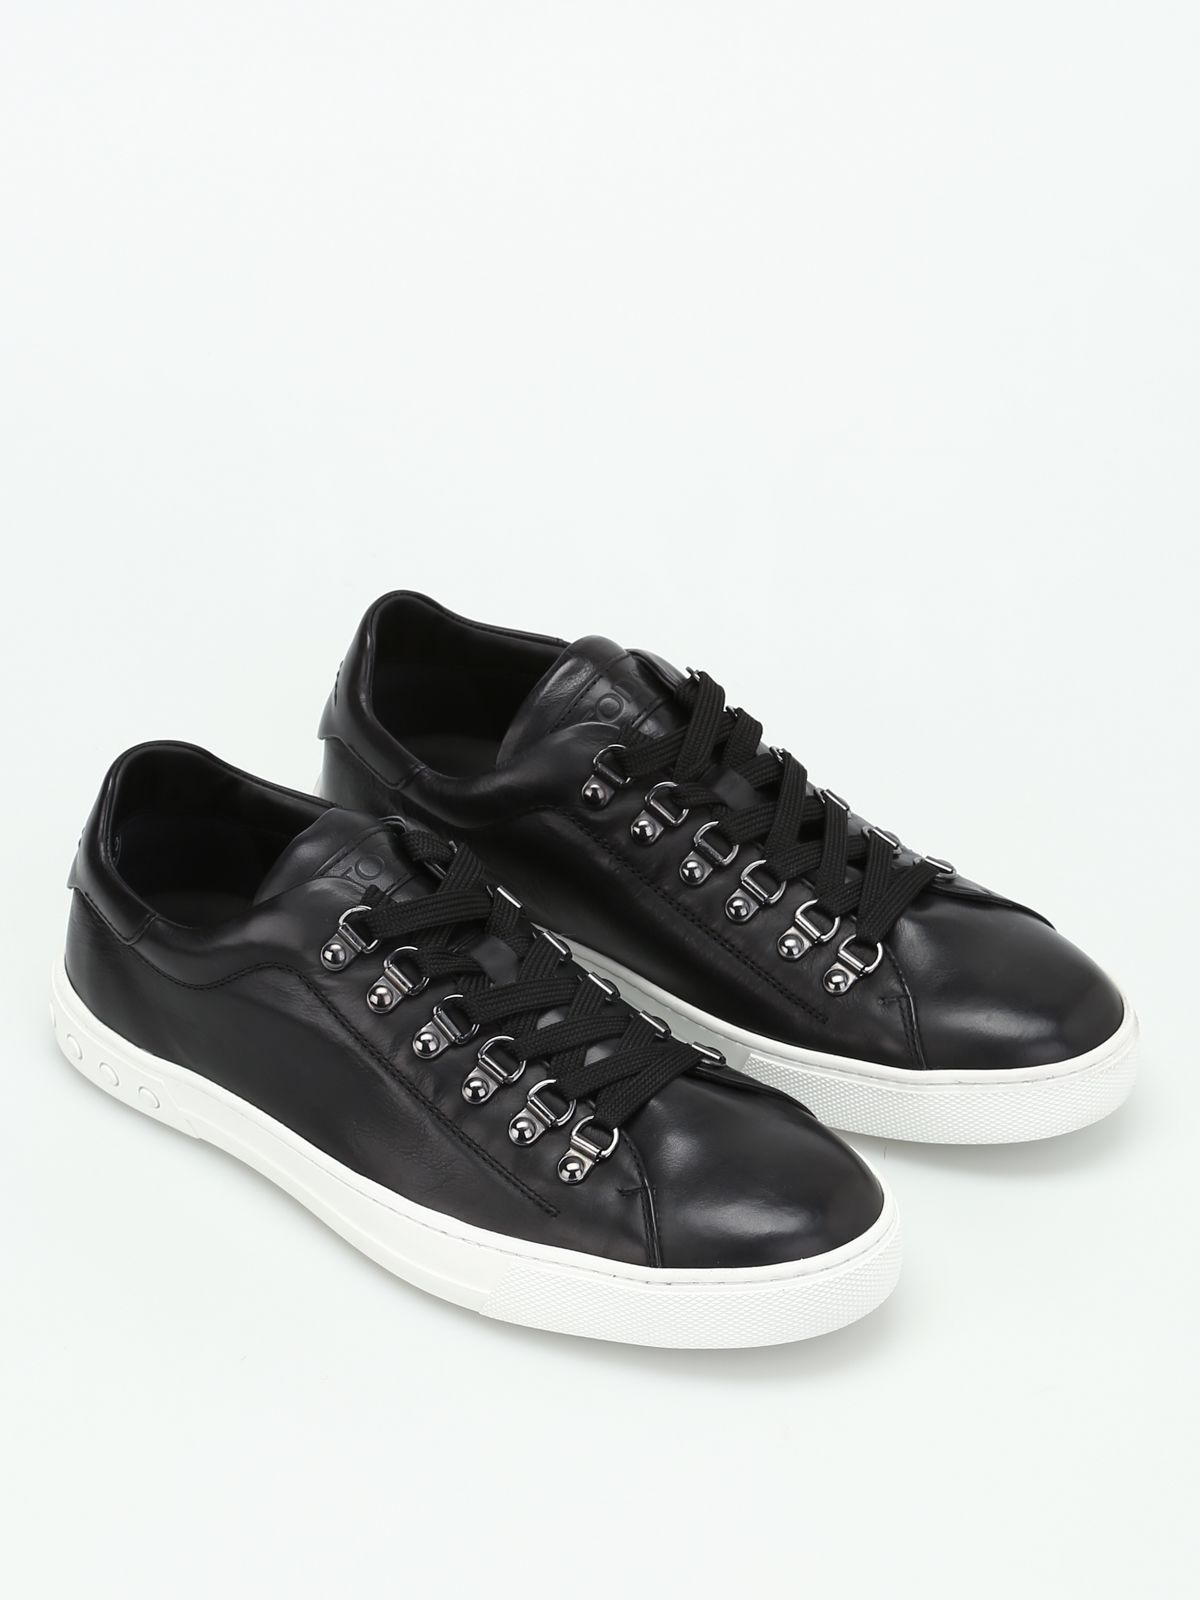 Todu0027s Sneakers In Leather Shoppable search